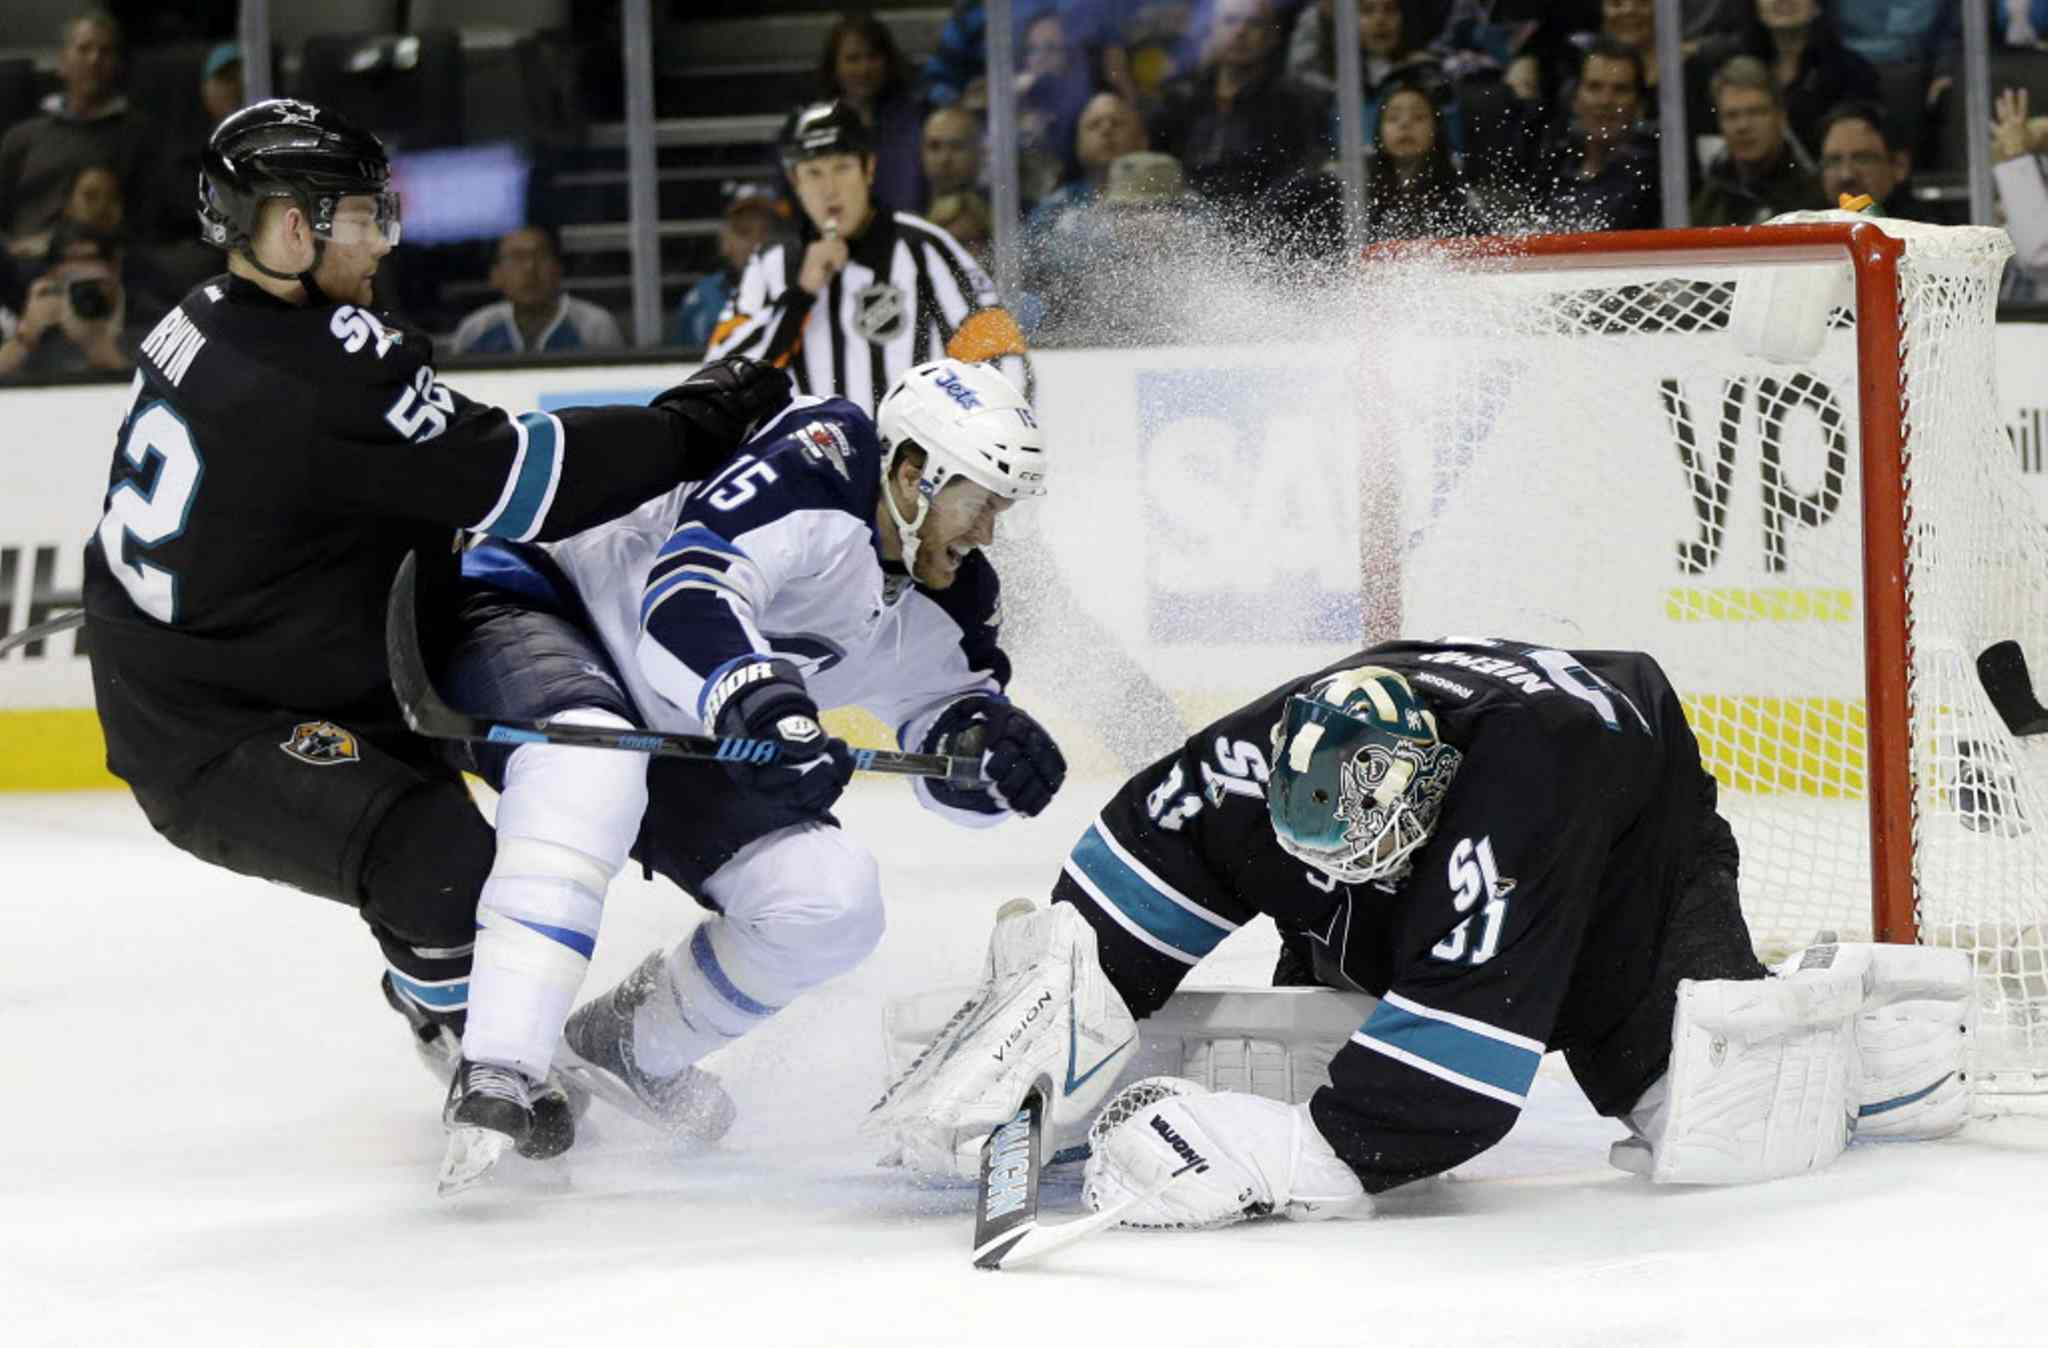 San Jose Sharks goalie Antti Niemi, right, stops a shot next to Winnipeg Jets' Matt Halischuk (15) and teammate Matt Irwin (52) during the second period on Thursday.